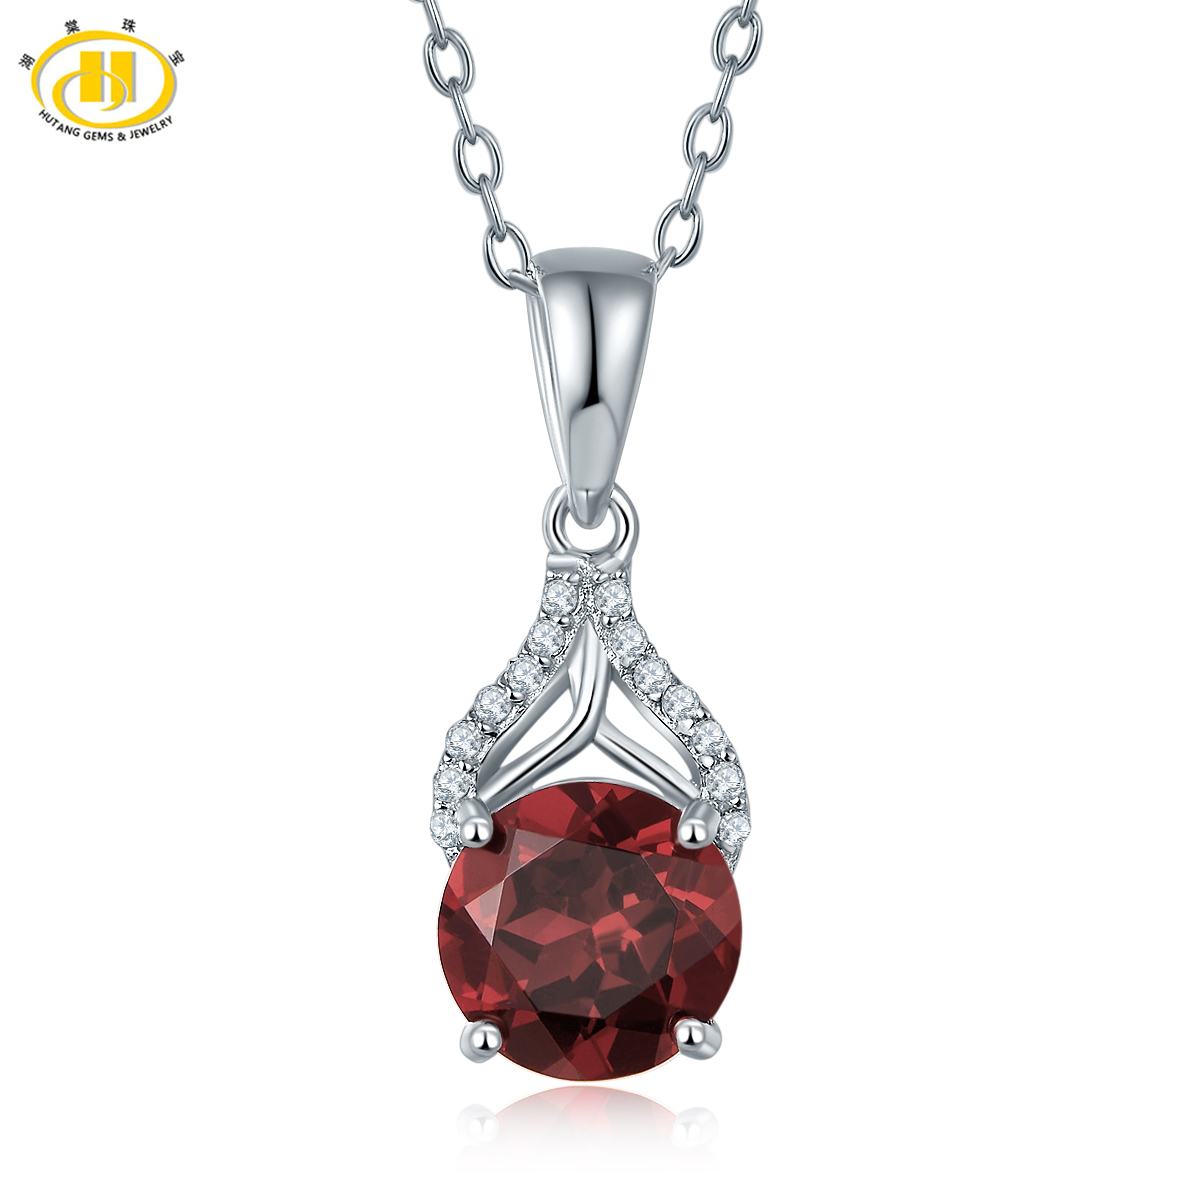 Hutang 2.05ct Natural Garnet Pendant Solid 925 Sterling Silver Necklace Gemstone Fine Jewelry Women's Ladies Accessories 2017